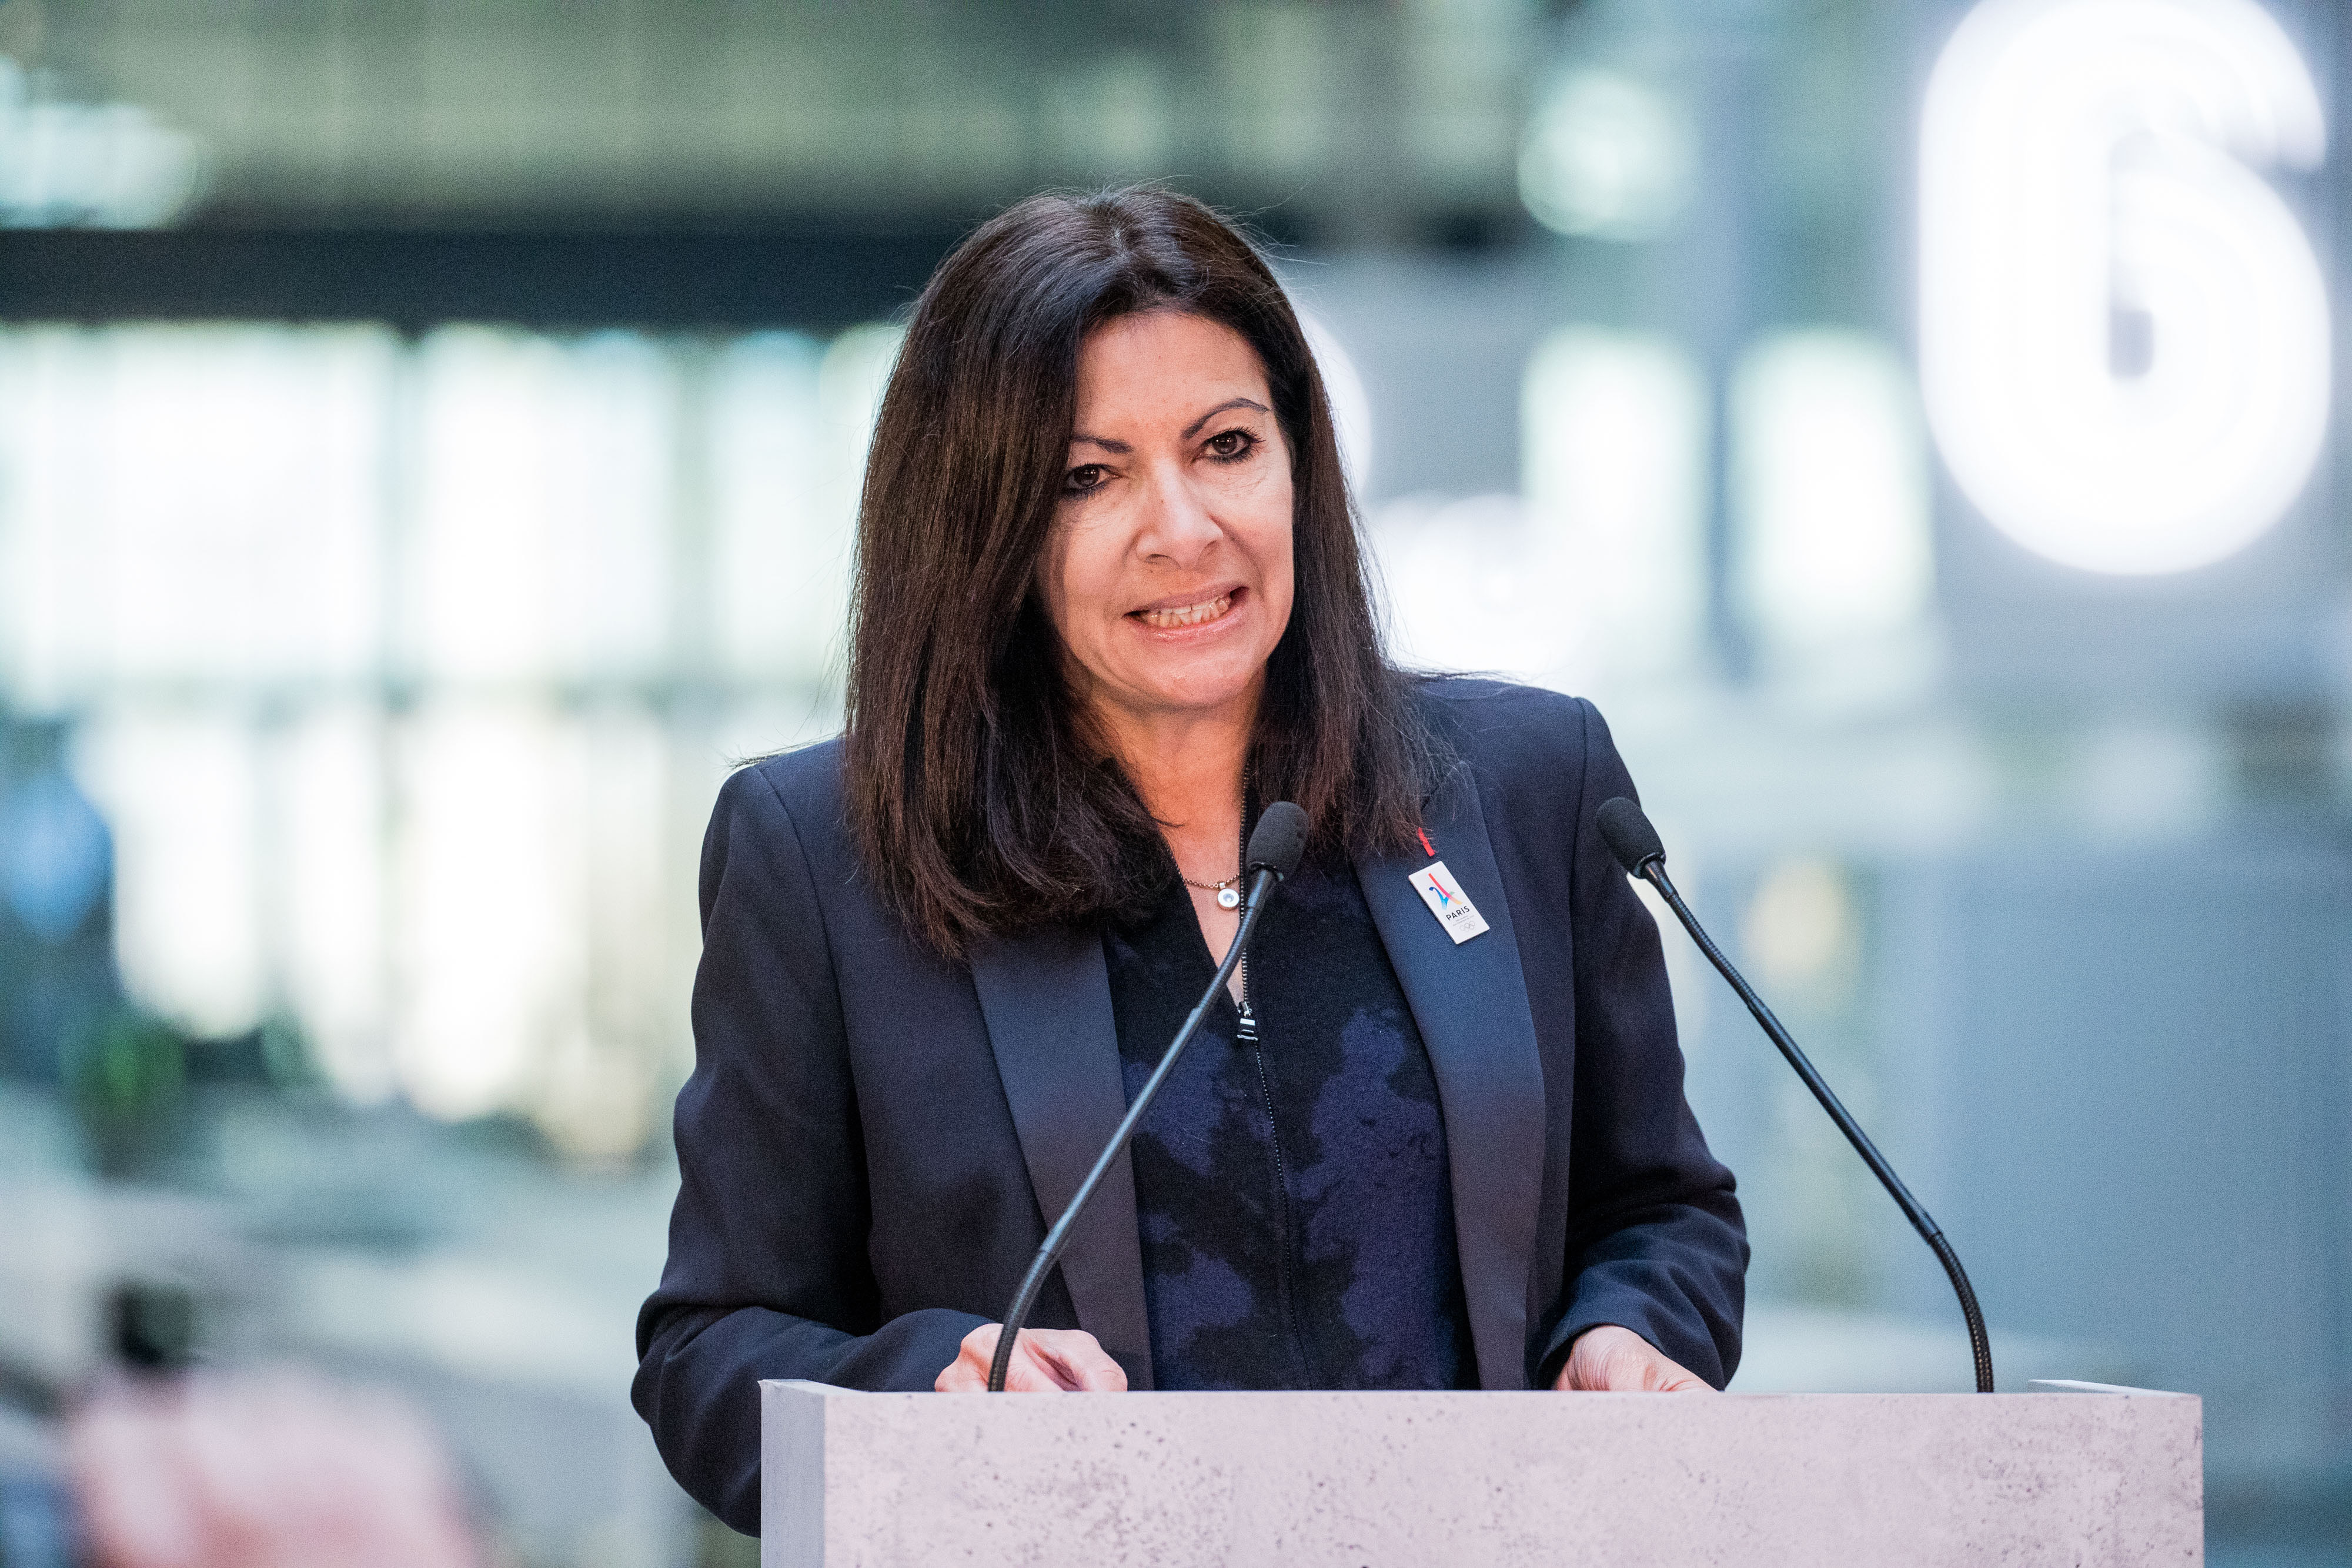 Anne Hidalgo, mayor of Paris, speaks during a news conference at Station F, a mega-campus for startups located inside a former freight railway depot, in Paris, France, on Tuesday, Jan. 17, 2017.